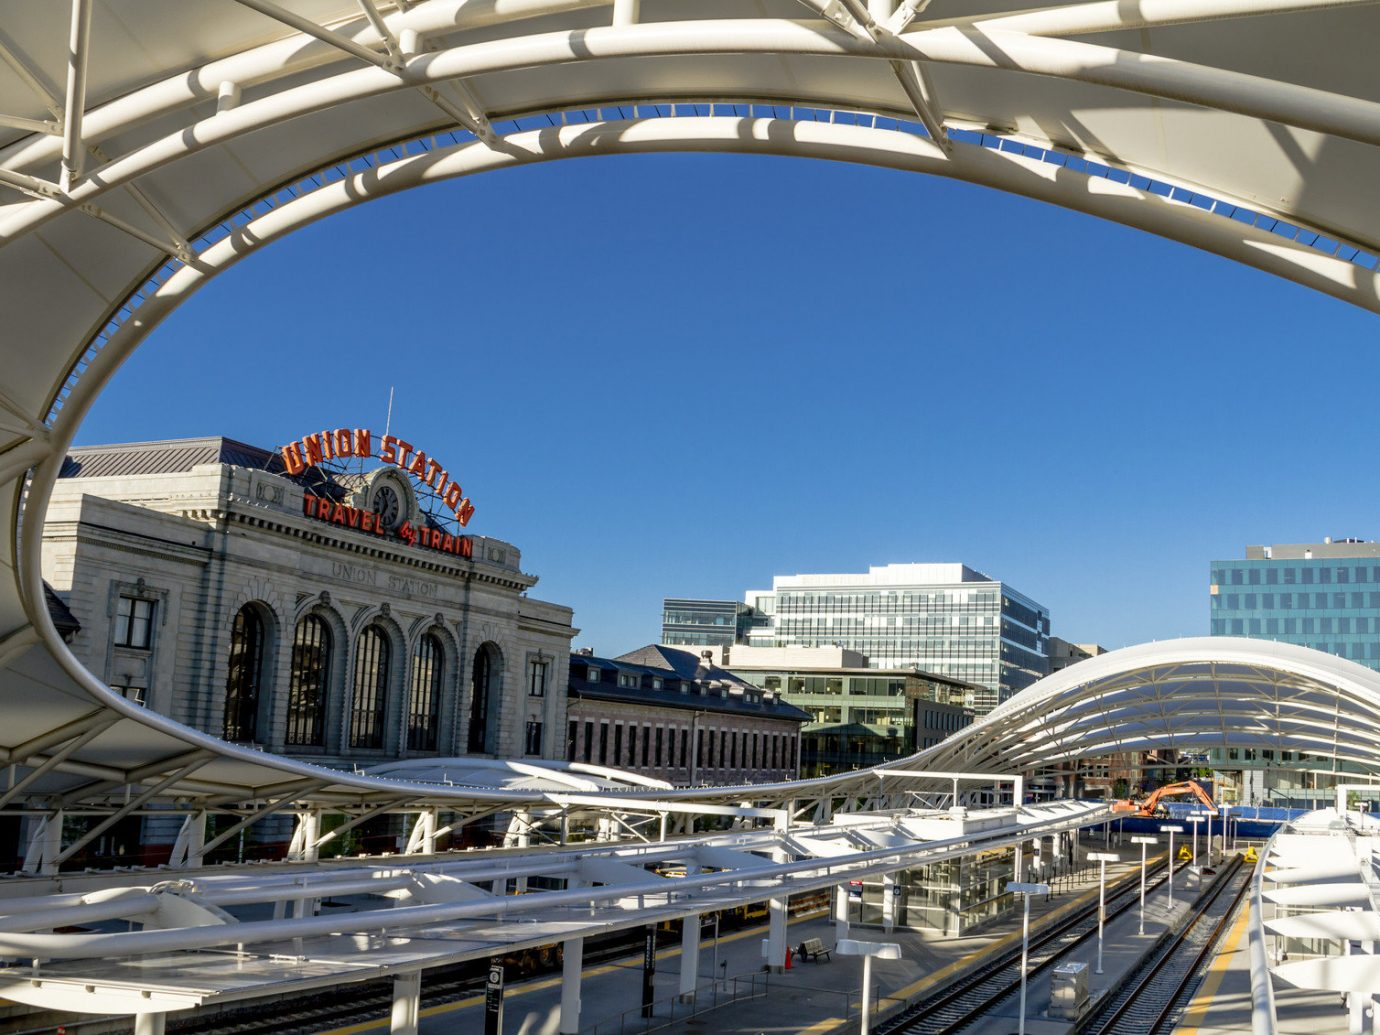 Food + Drink building outdoor structure transport landmark Architecture sport venue public transport stadium overpass bridge skyway arena cityscape arch shopping mall dome opera house convention center